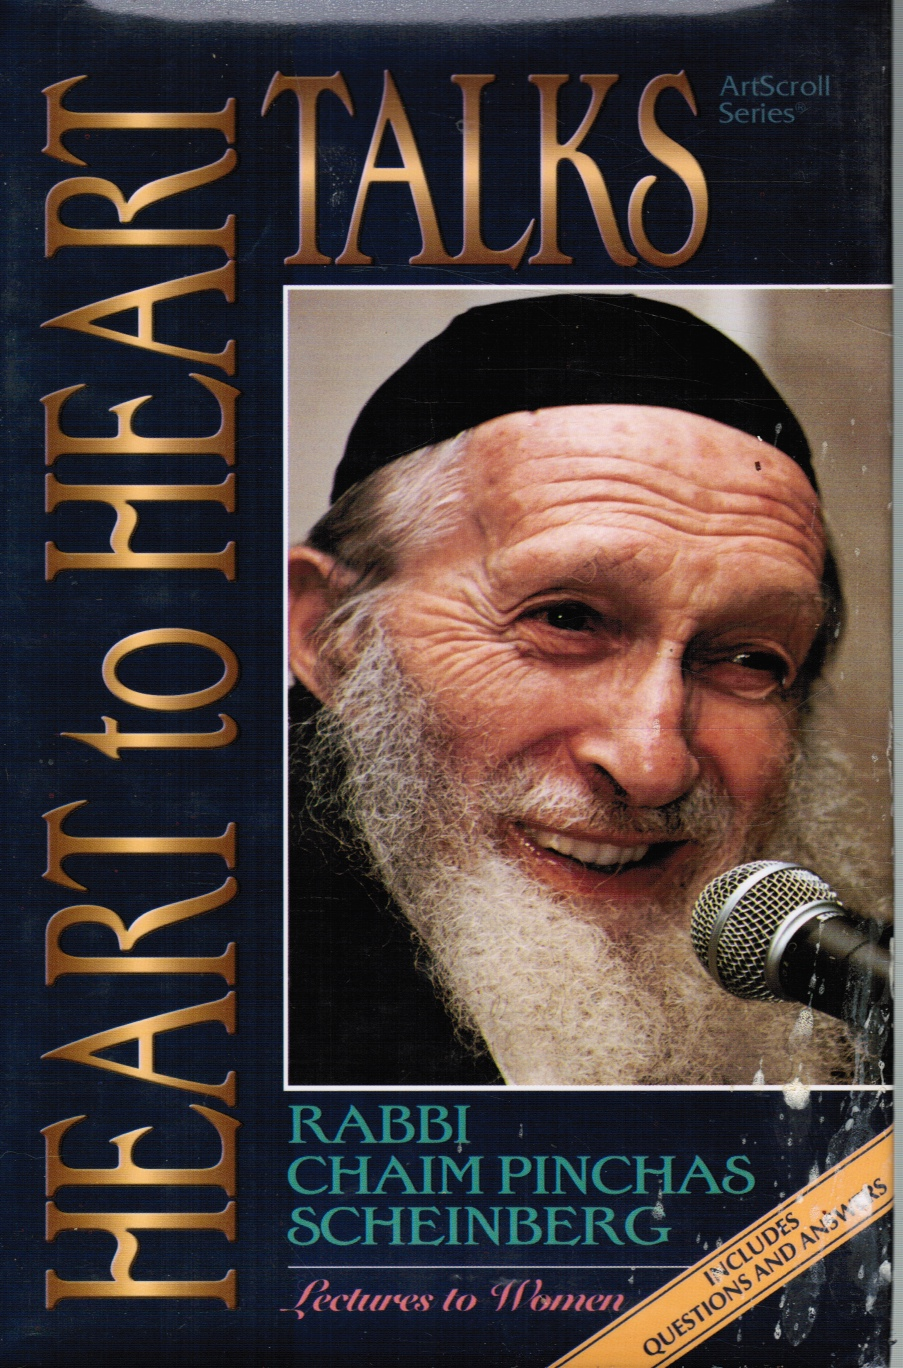 Image for Heart to Heart Talks: Rabbi Chaim Pinchas Scheinberg : Lectures to Women